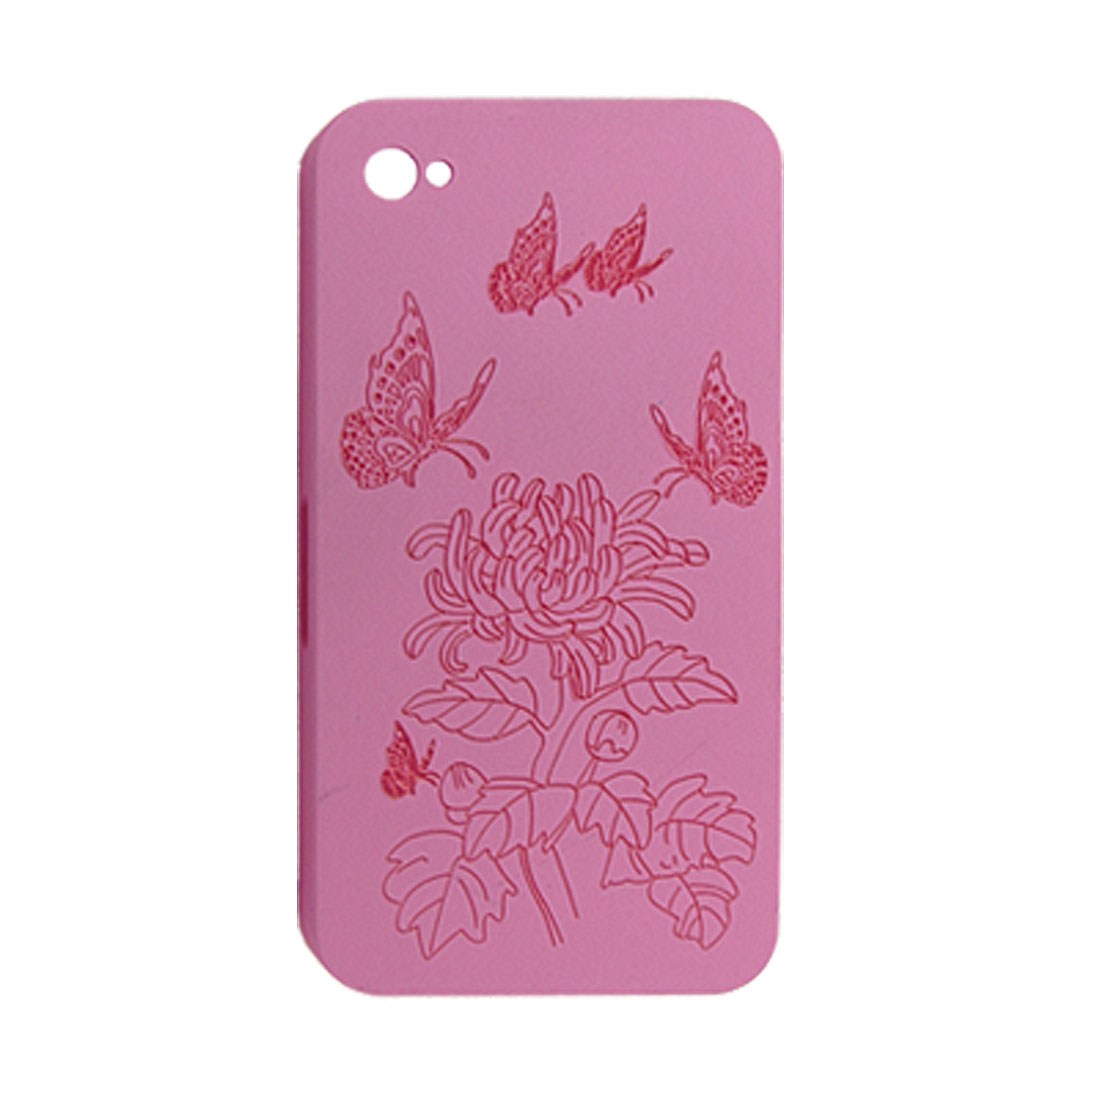 Protective Floral Printed Dark Pink Hard Shell Back Case for iPhone 4 4G